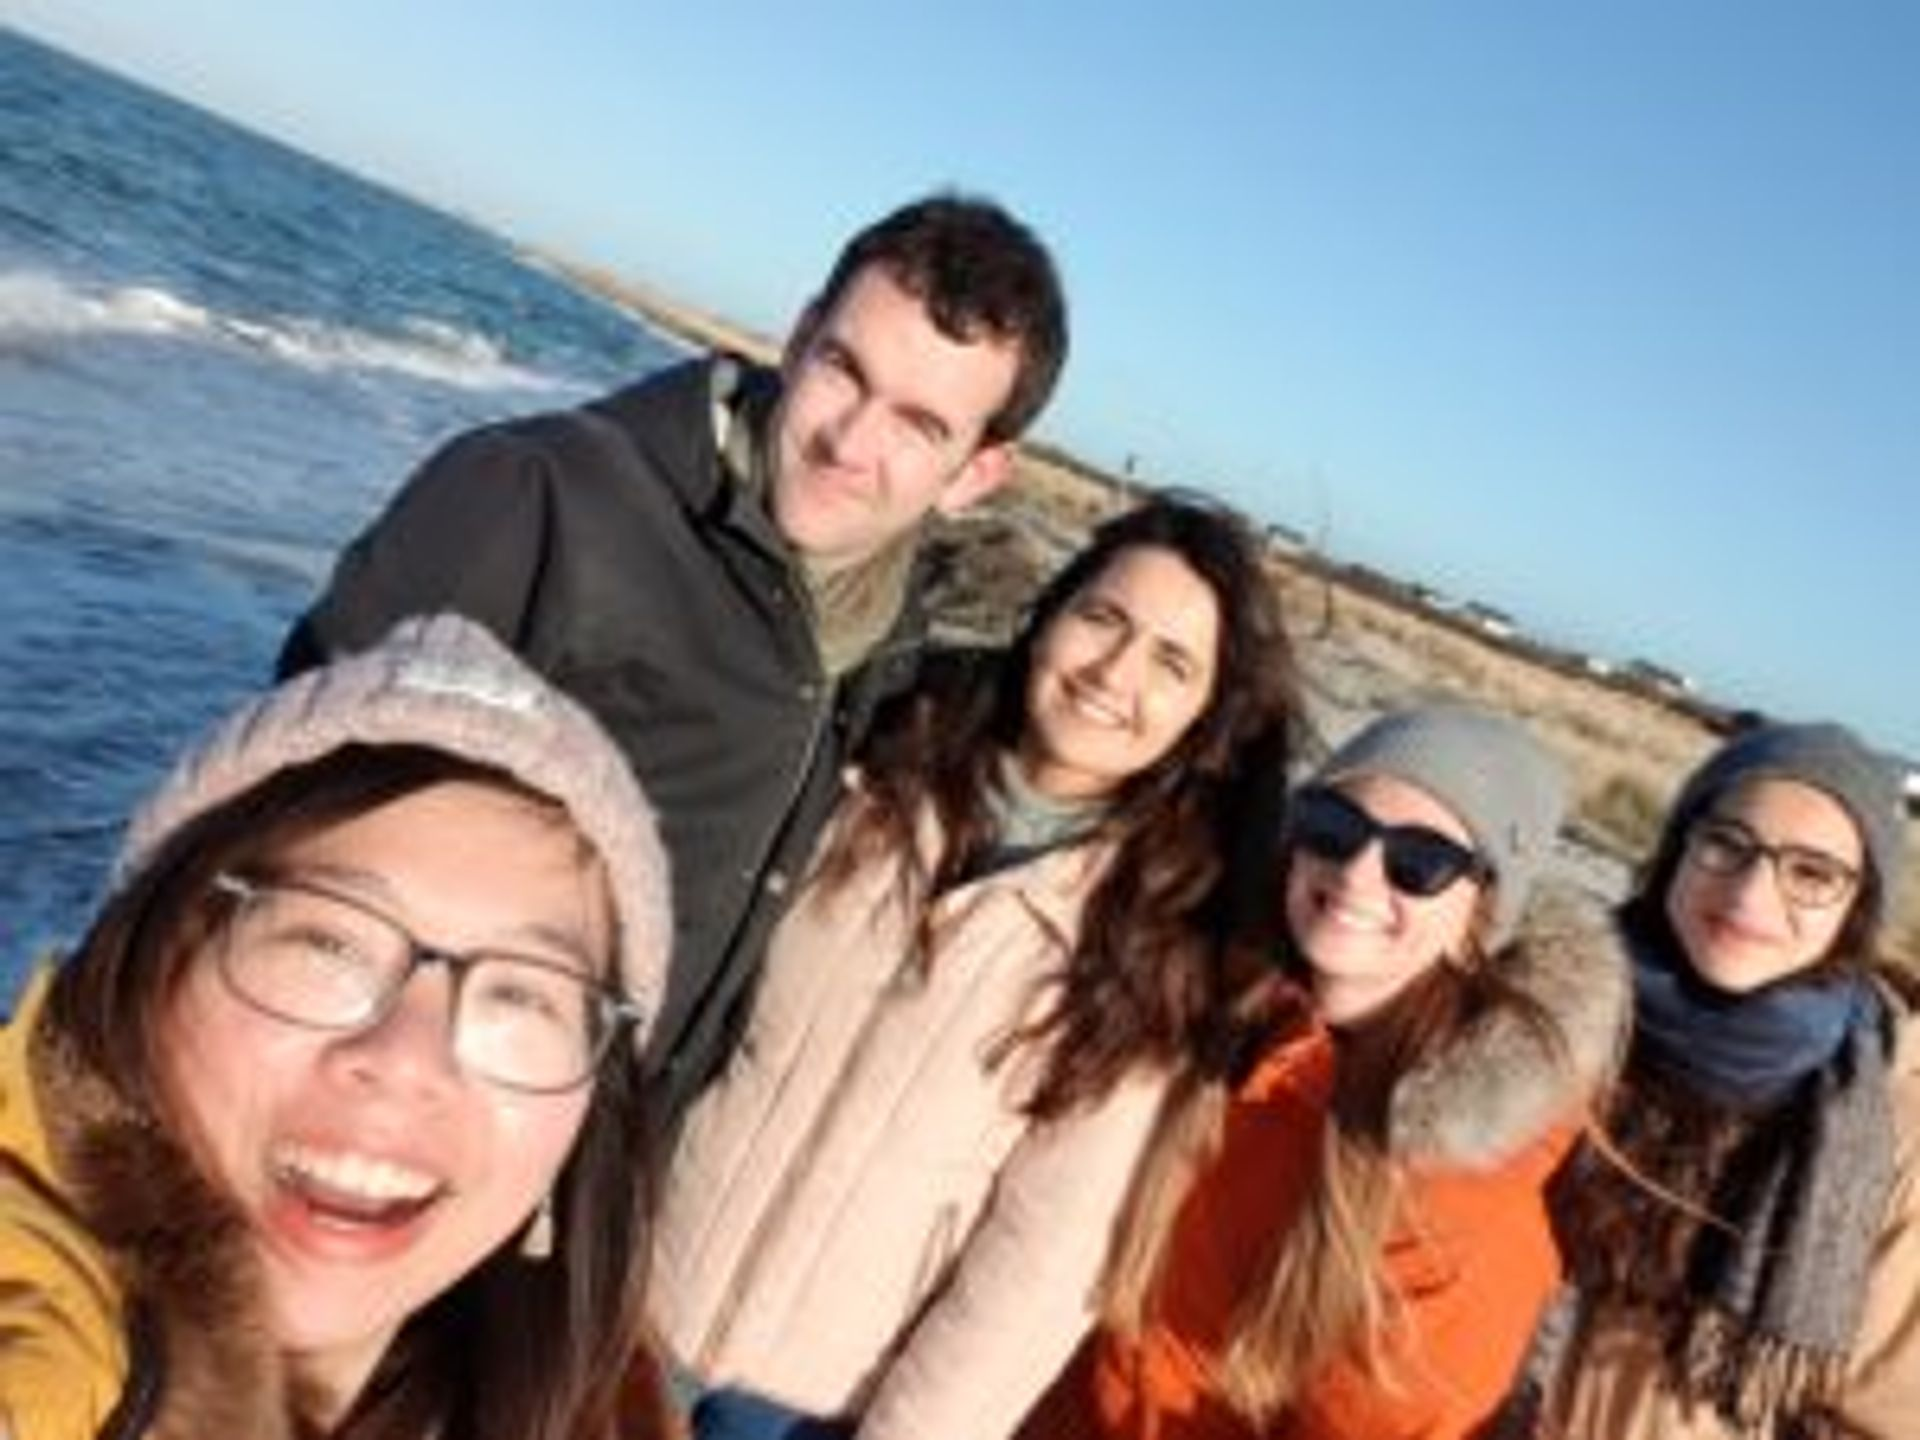 Nguyen and friends at the beach.